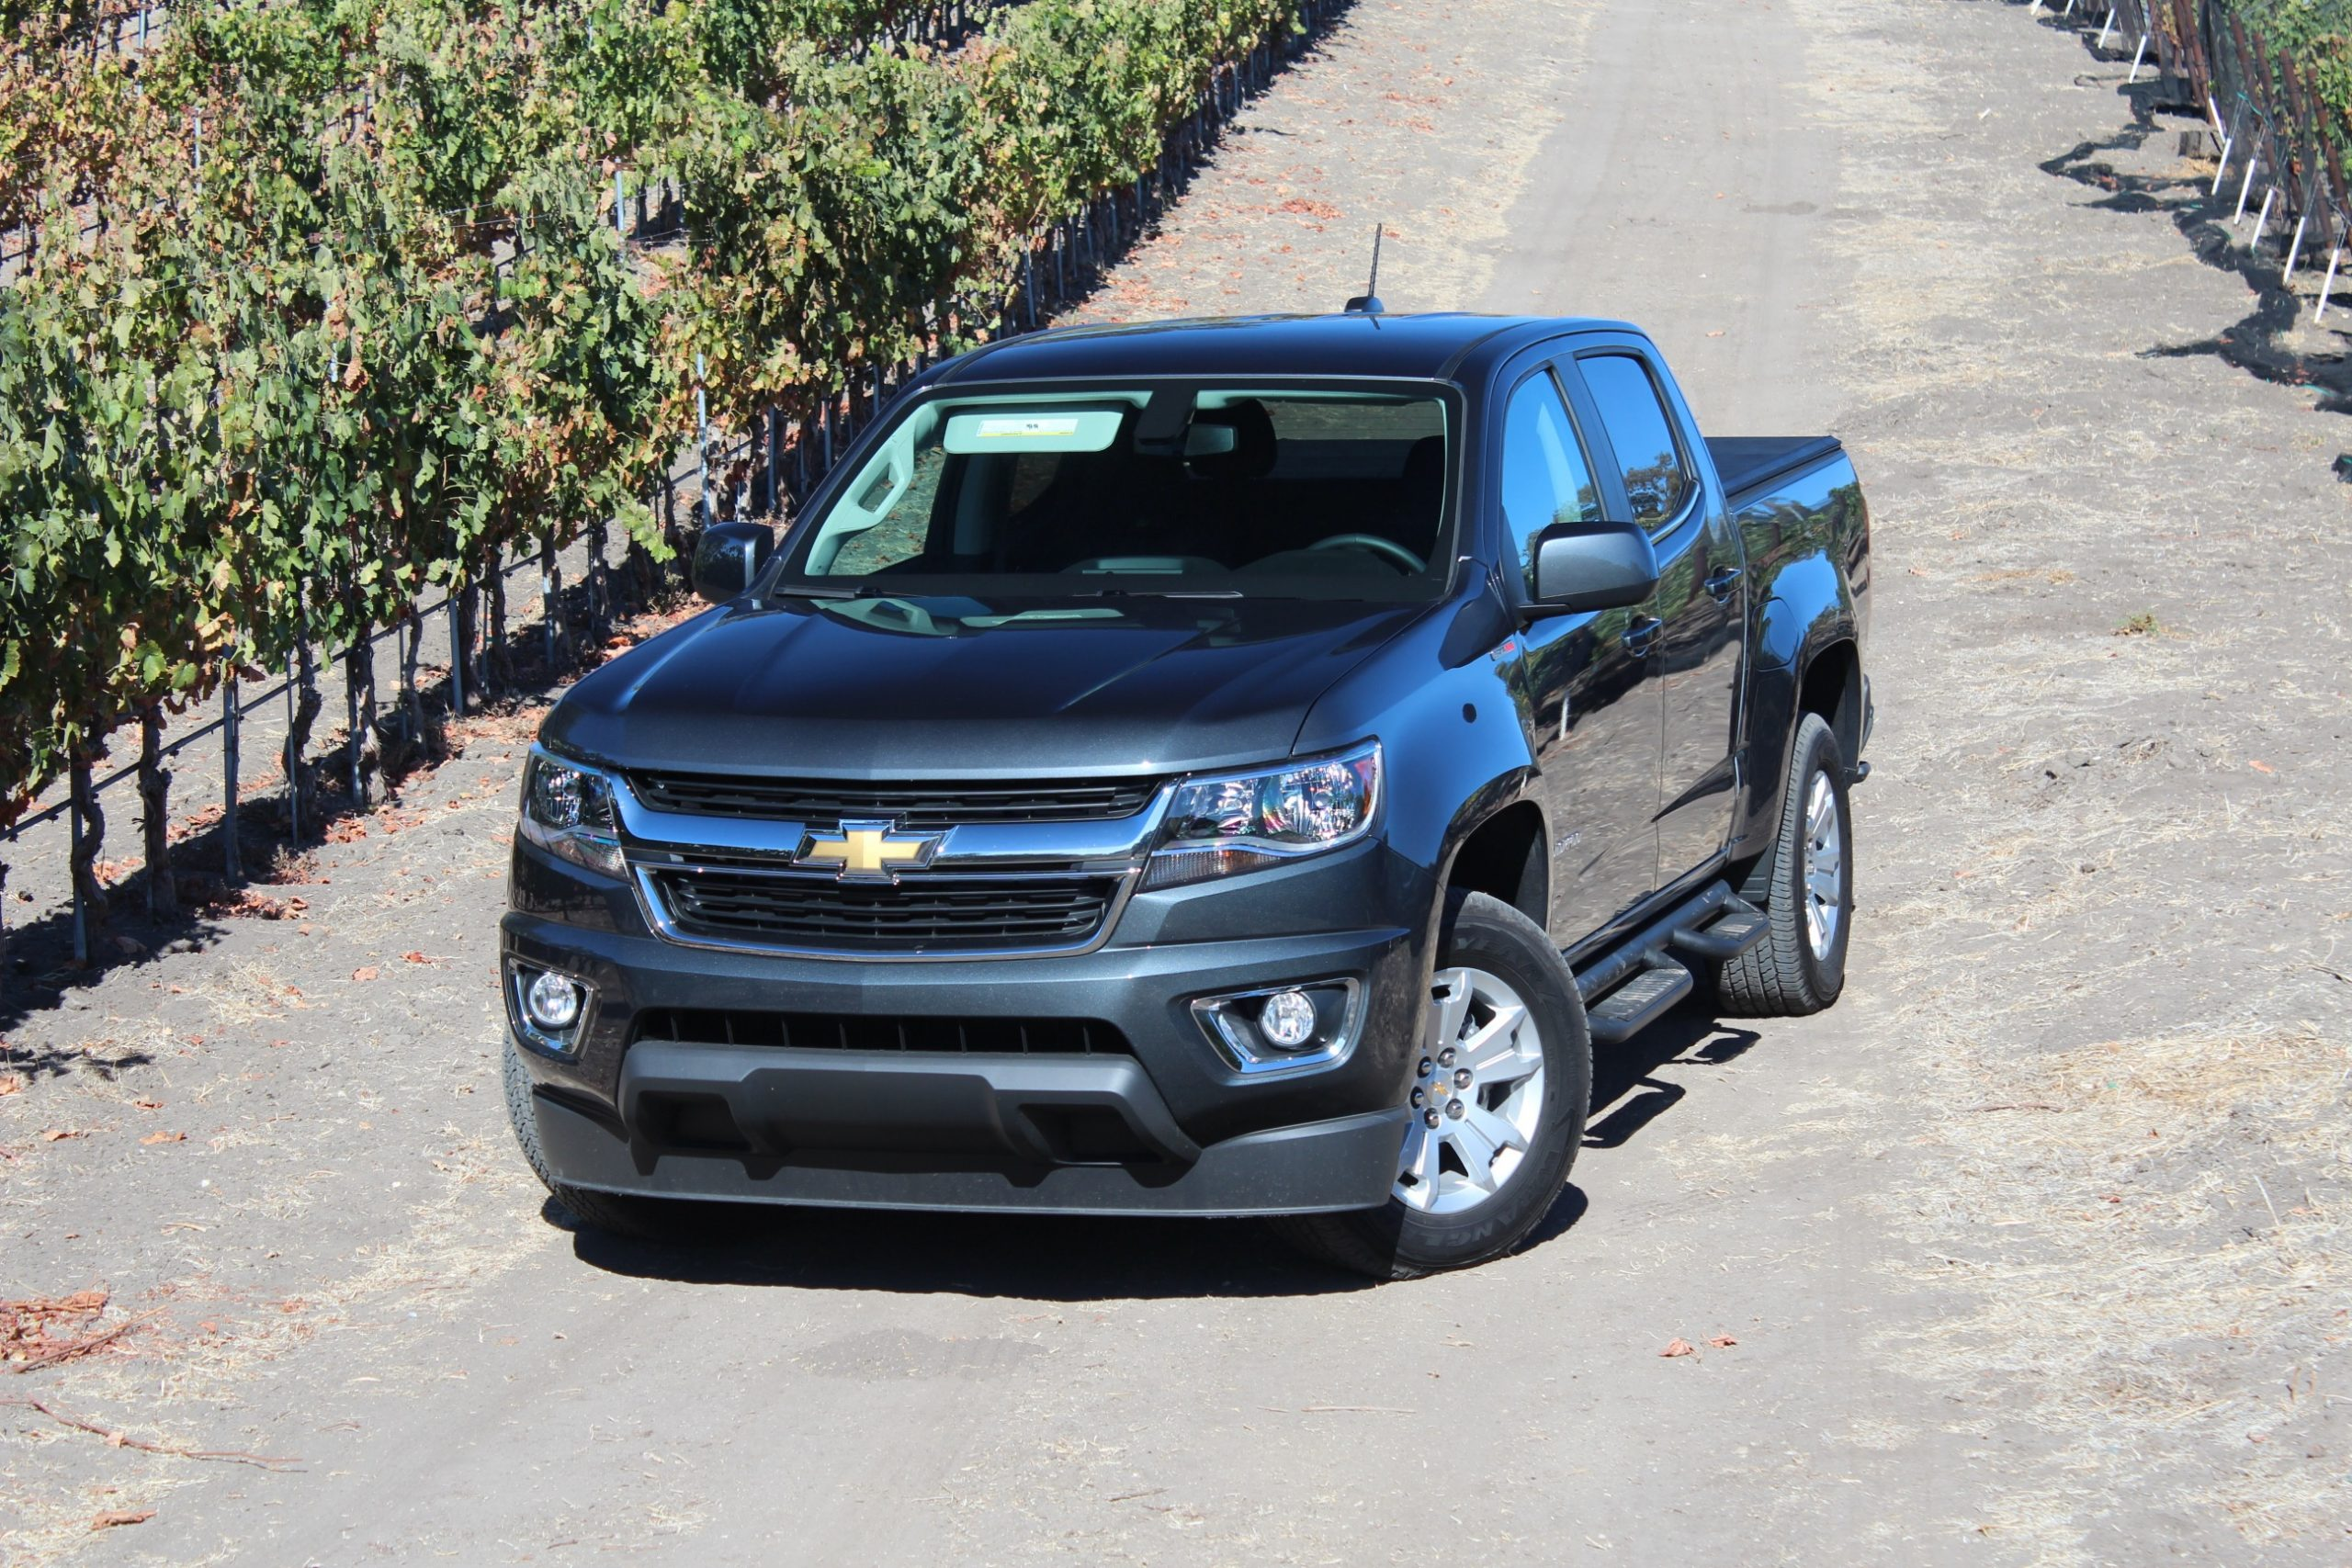 2016 Chevrolet Colorado Diesel: First Drive 2021 Chevy Colorado Crew Cab Running Boards, Length, Dimensions